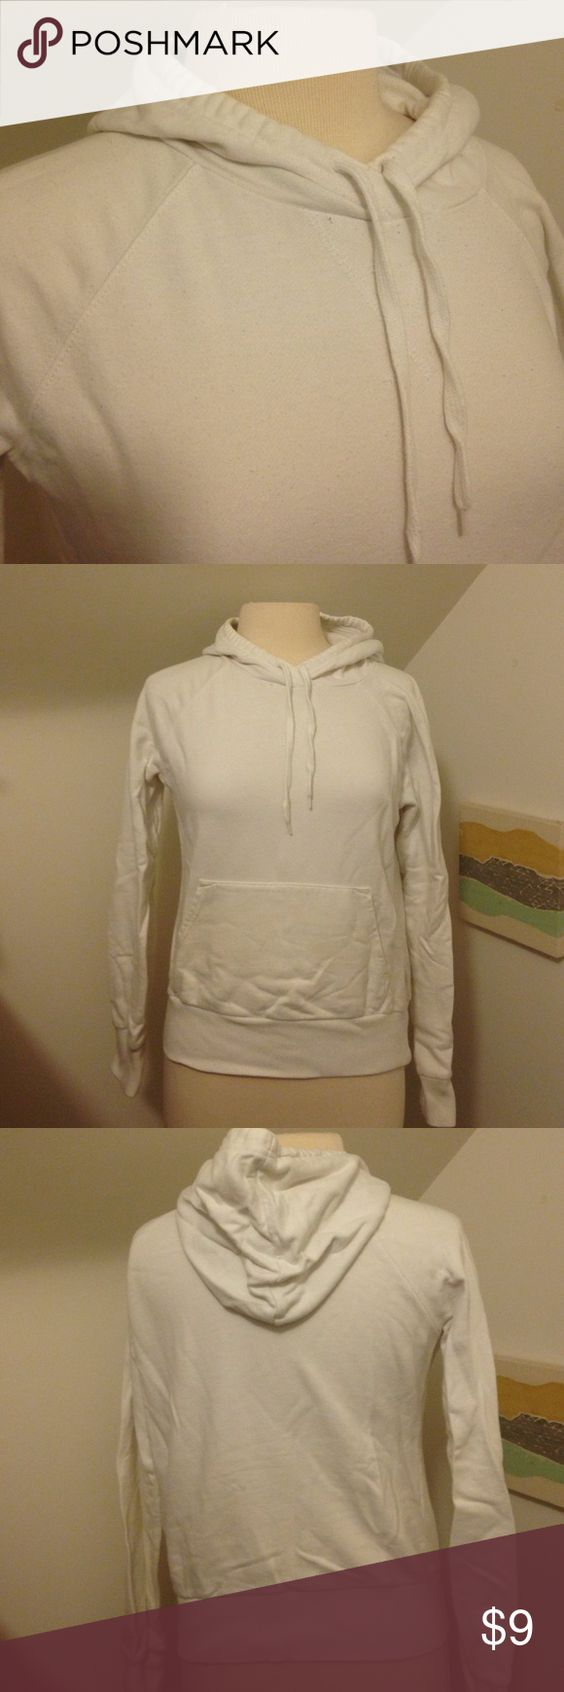 White hoodie Plain white sweatshirt with hood and front pocket. No stains, great condition. No size, probably a small or xsmall H&M Sweaters